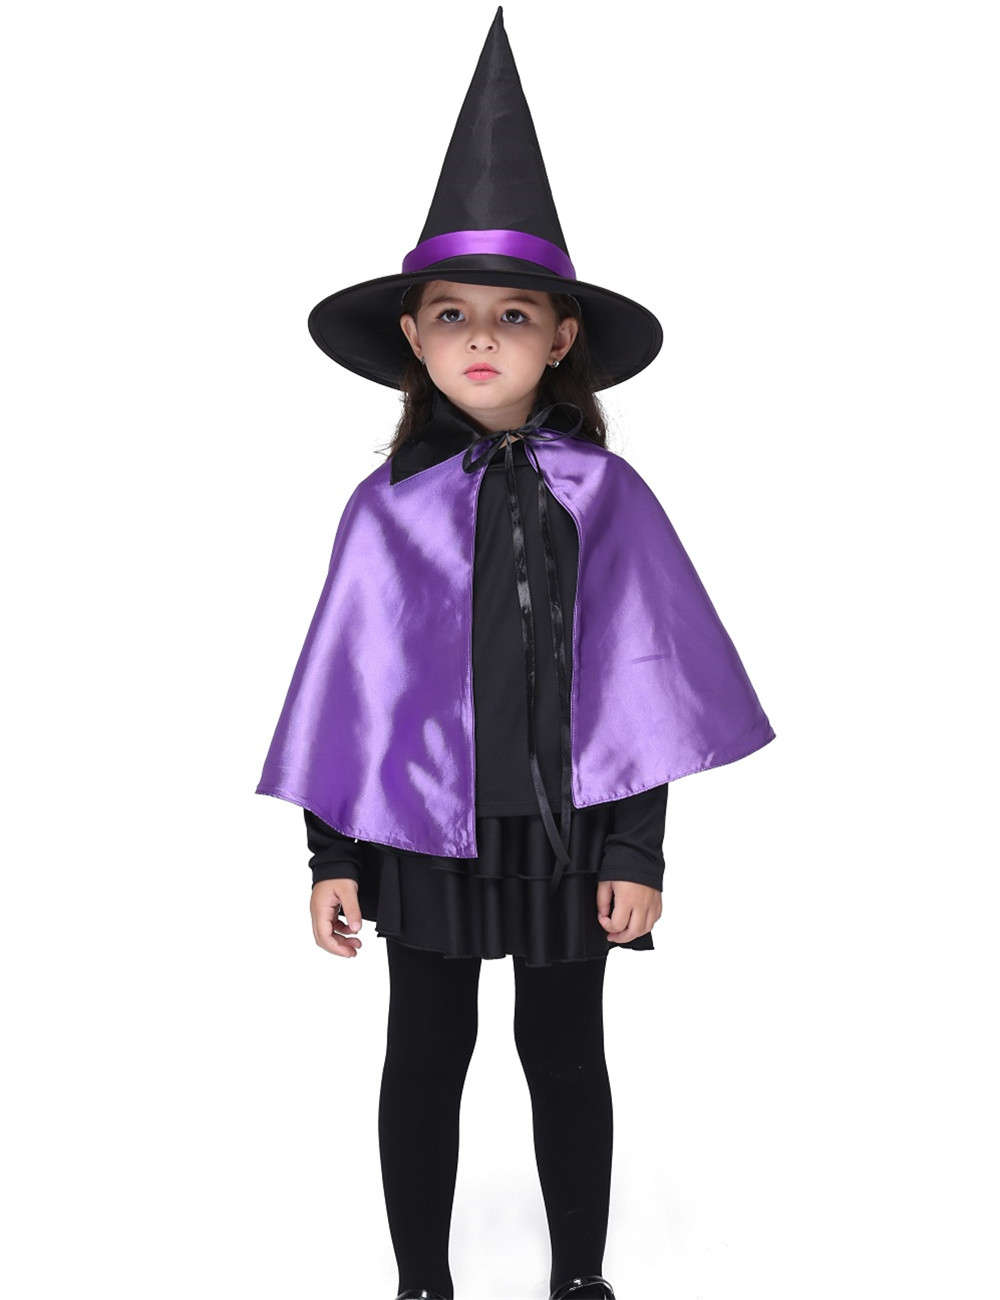 Witch Costume Halloween Costume For Kids Stage & Dance Wear Girls Short Sleeve Skirt With Cloak Toddler Party Cosplay